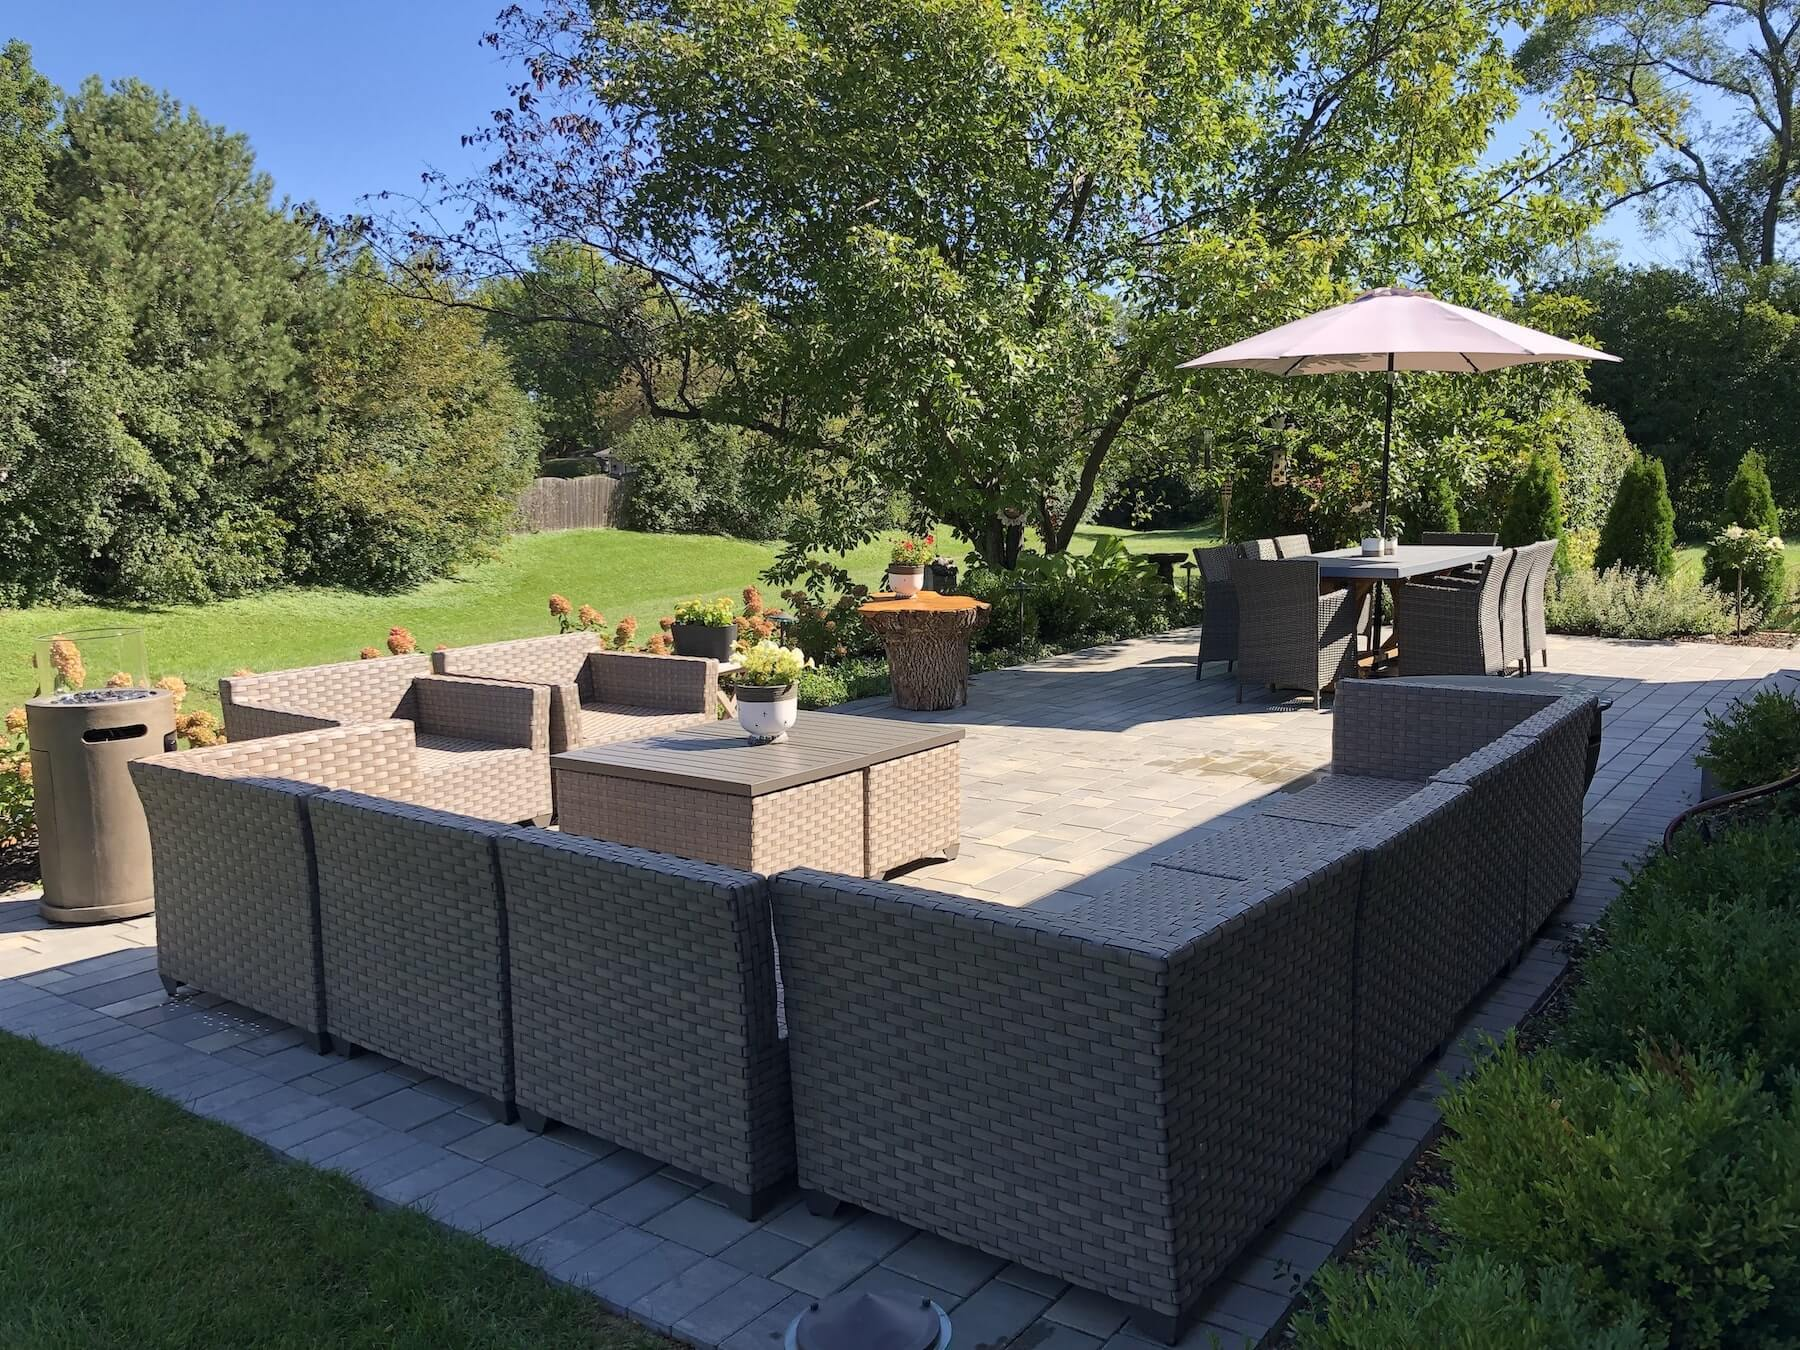 Paver Patio & Lounge Area Northbrook IL